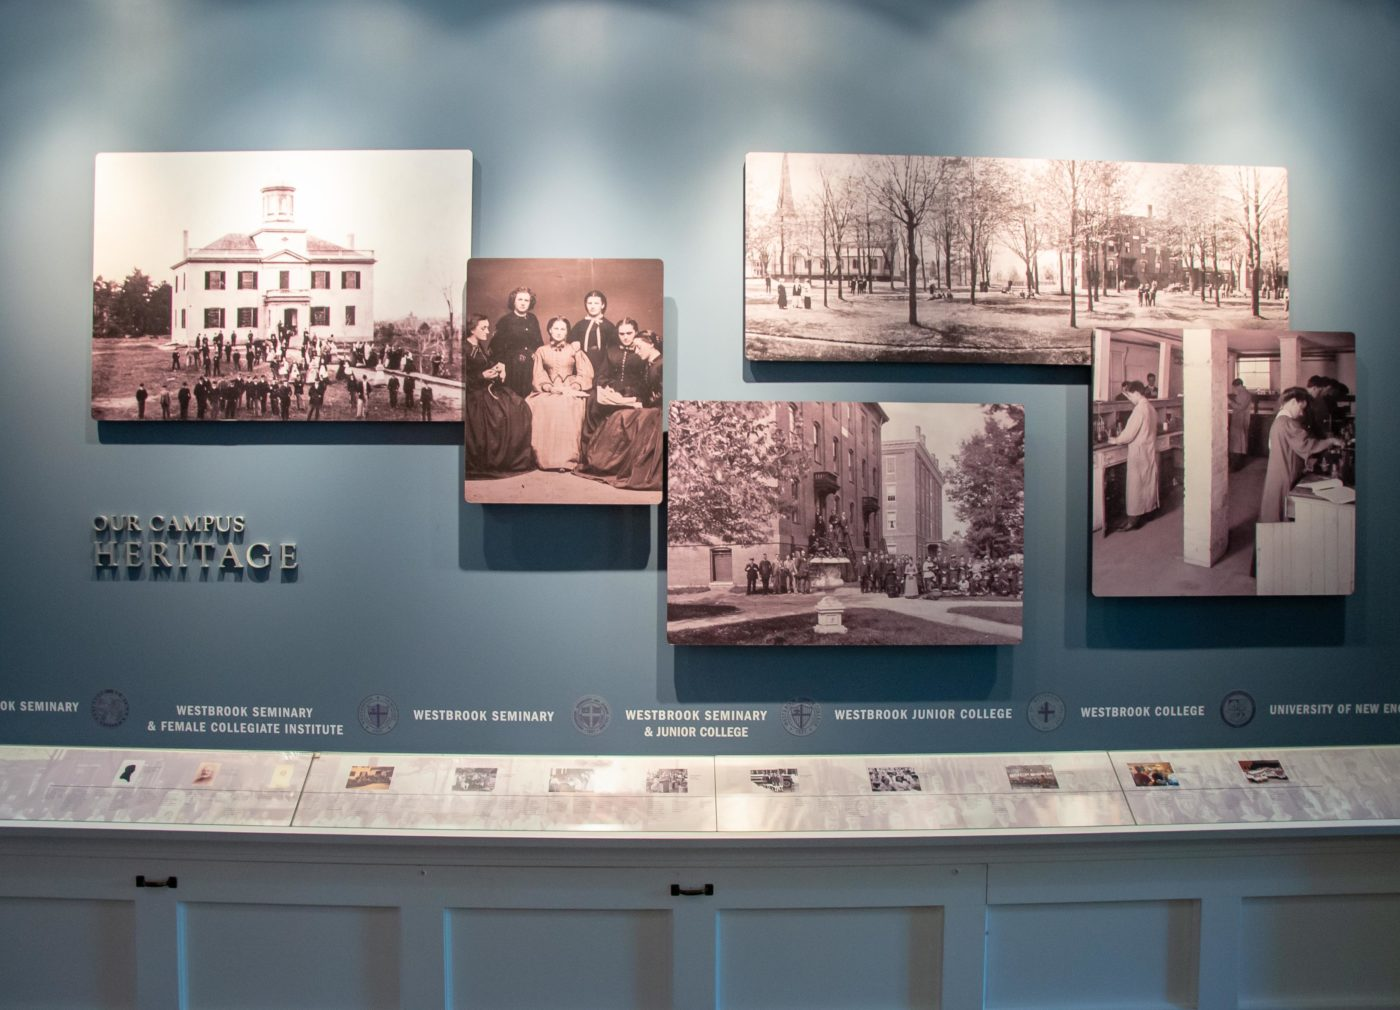 Our Campus Heritage exhibit wall with historical photos and timeline